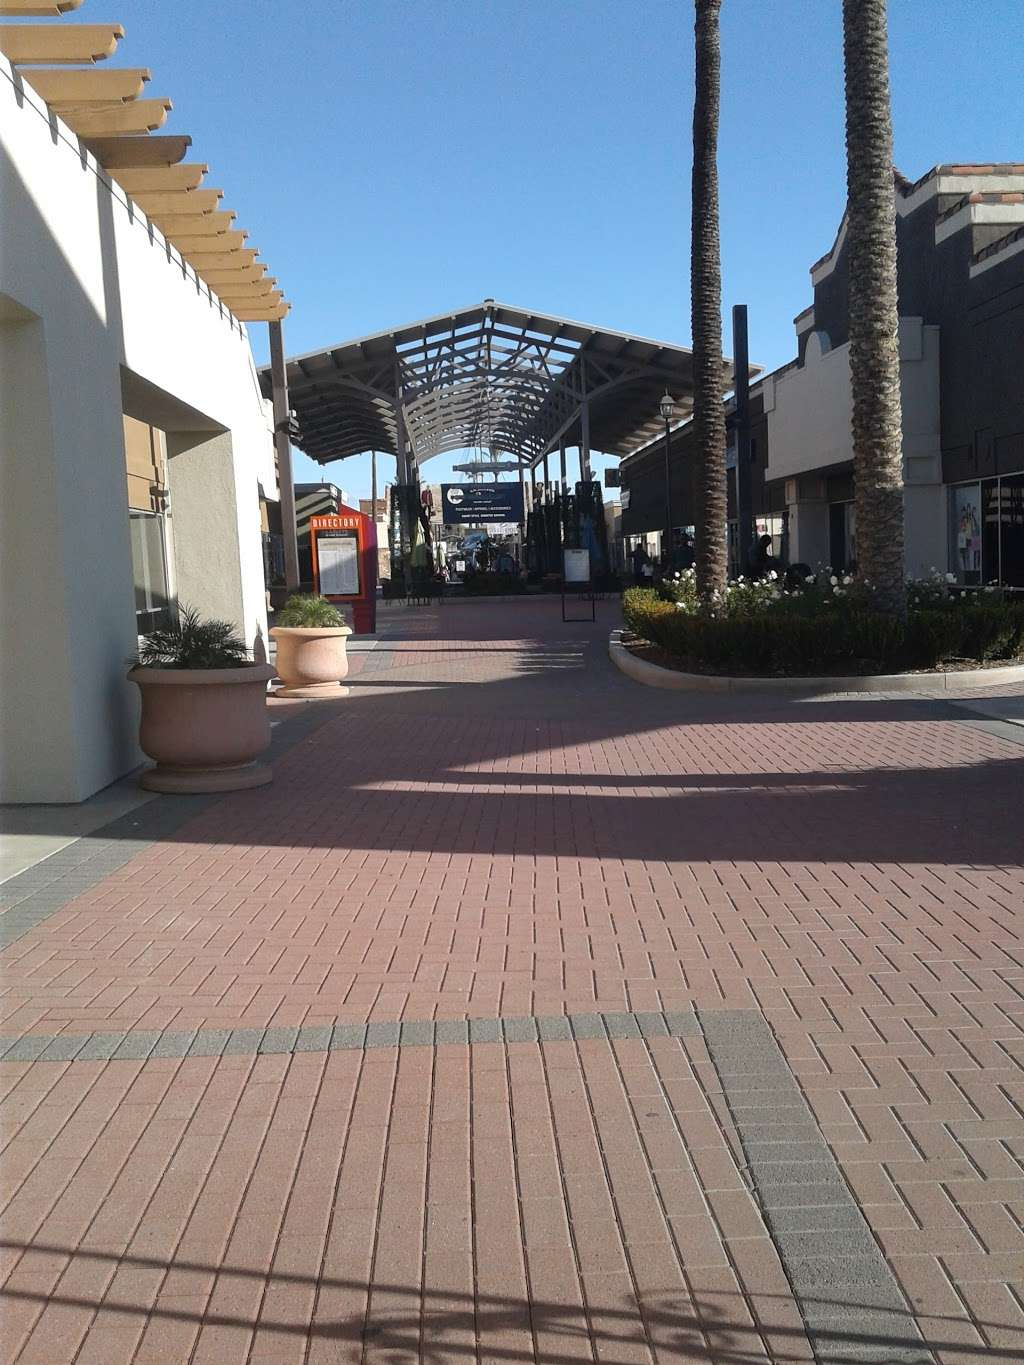 Gap Outlet - clothing store    Photo 10 of 10   Address: 17600 Collier Ave, Lake Elsinore, CA 92530, USA   Phone: (951) 245-6003